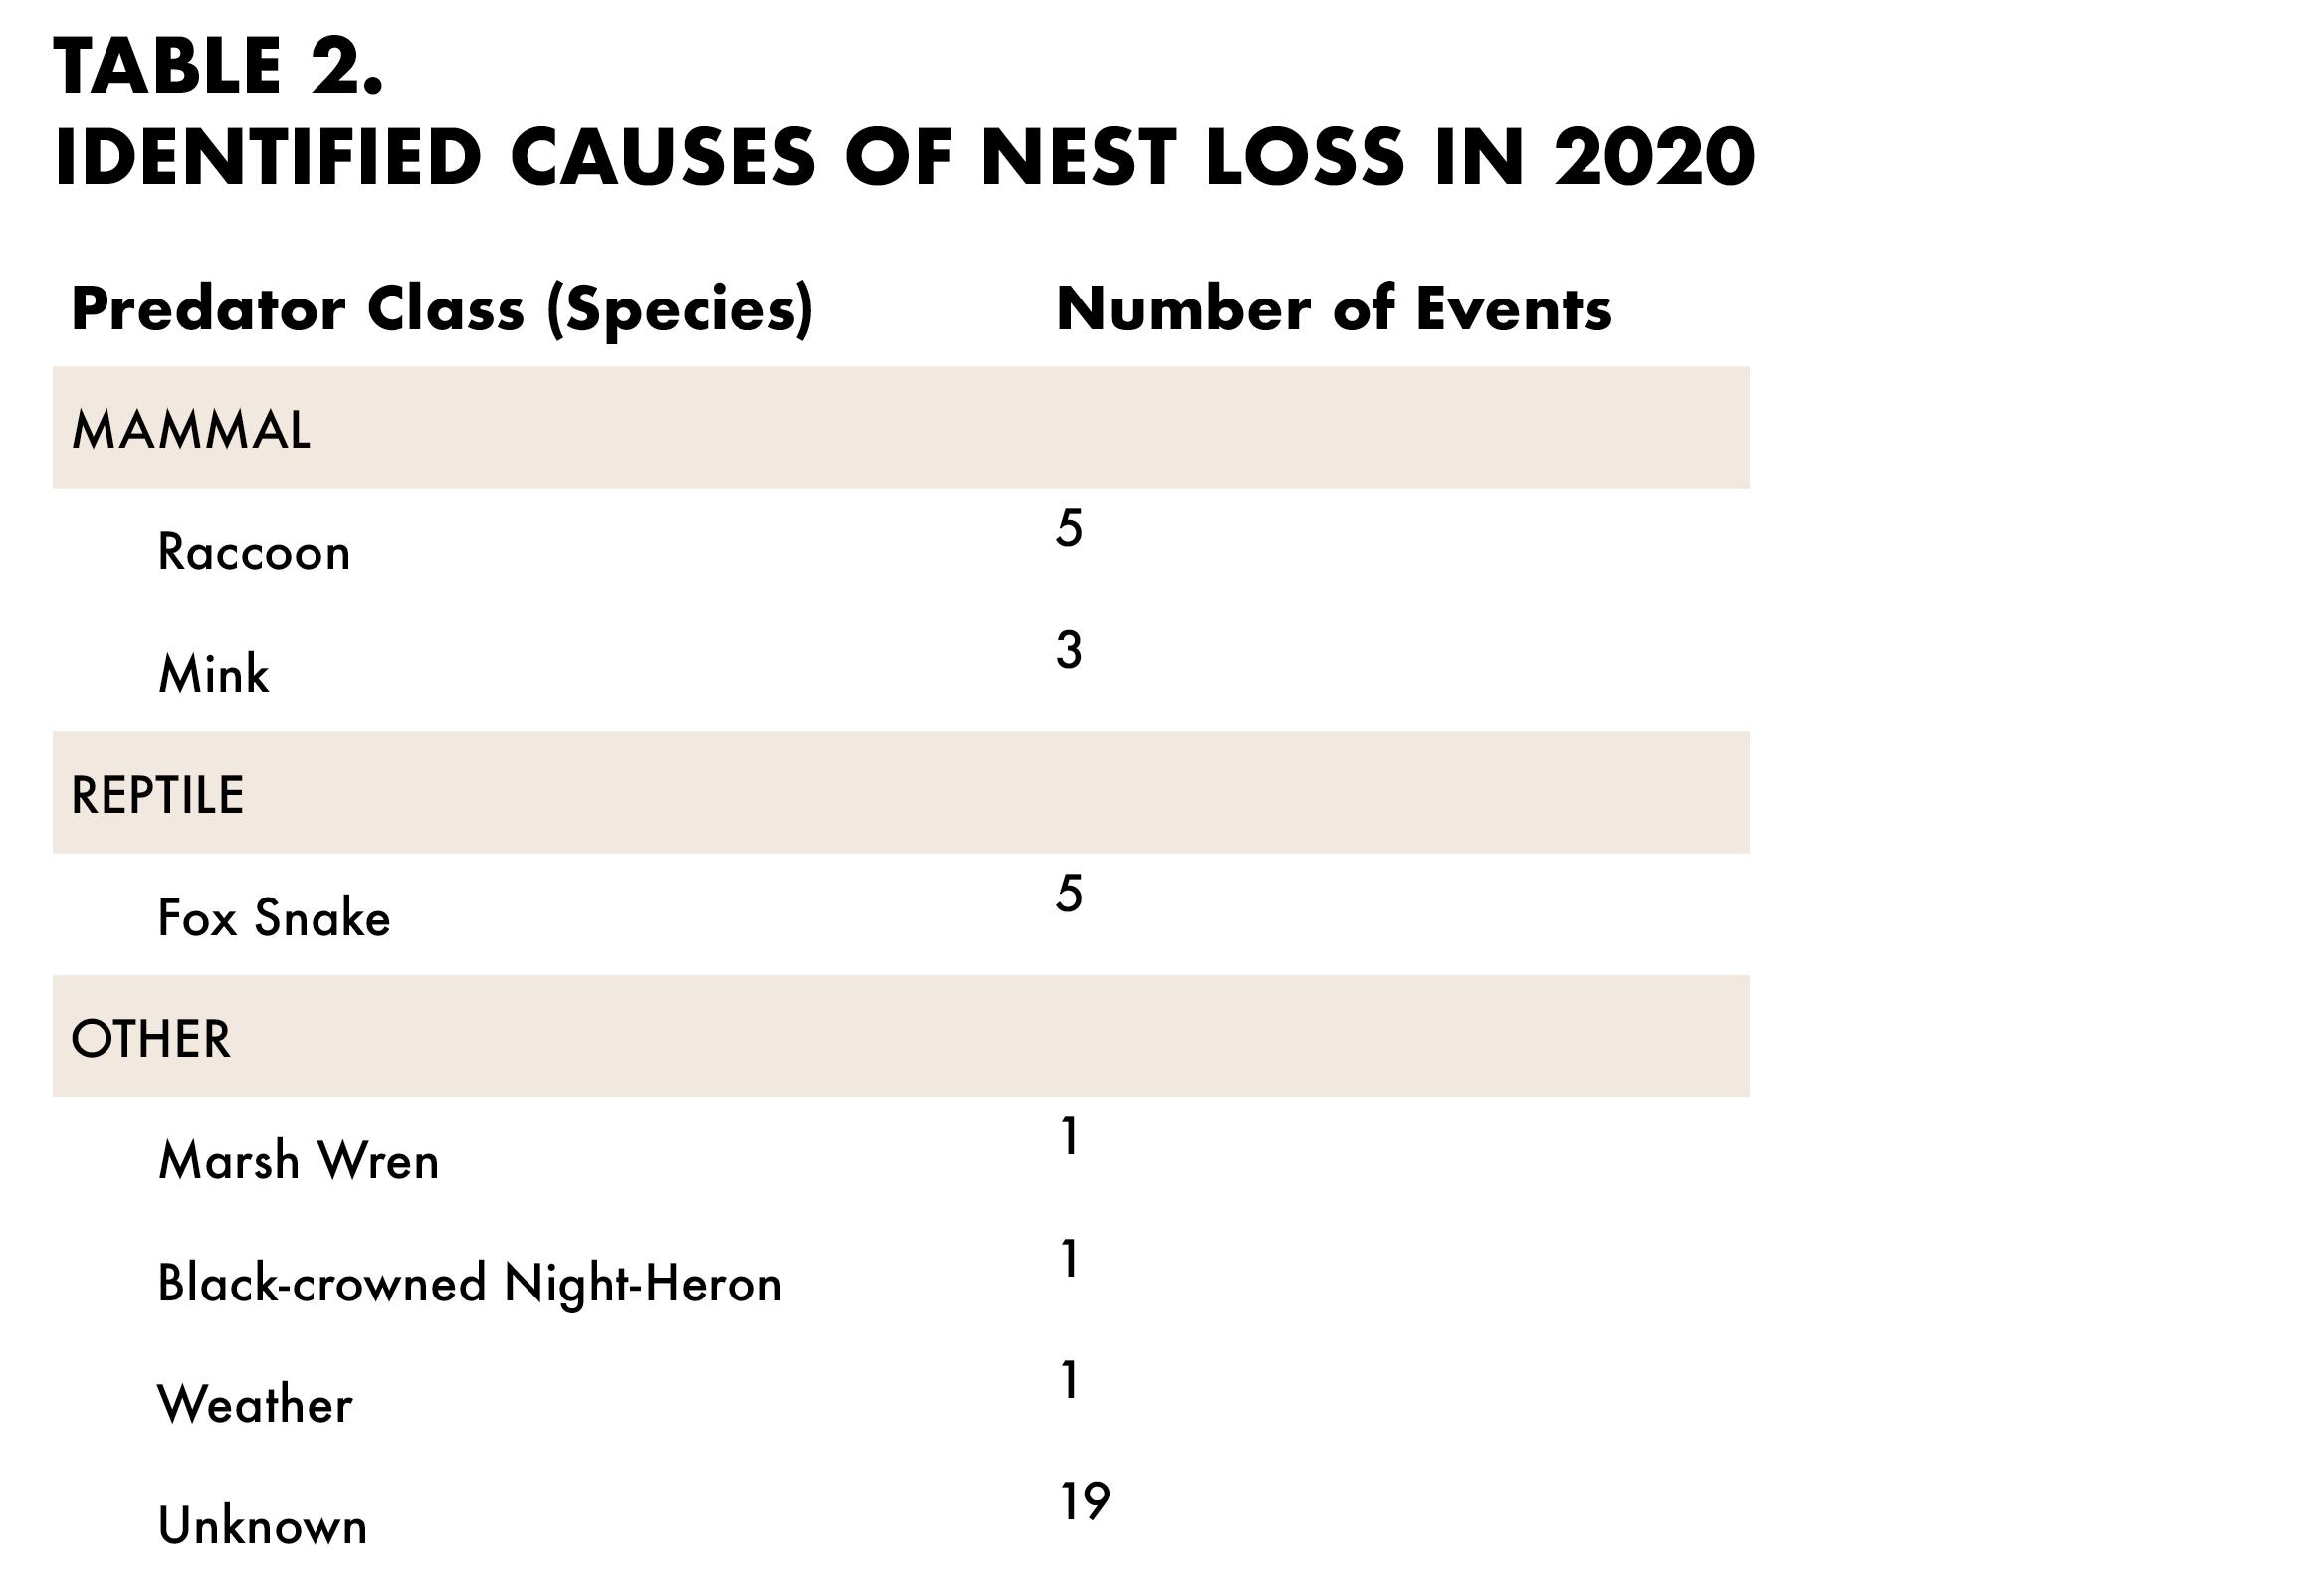 A table indicating causes of nest loss in 2020.